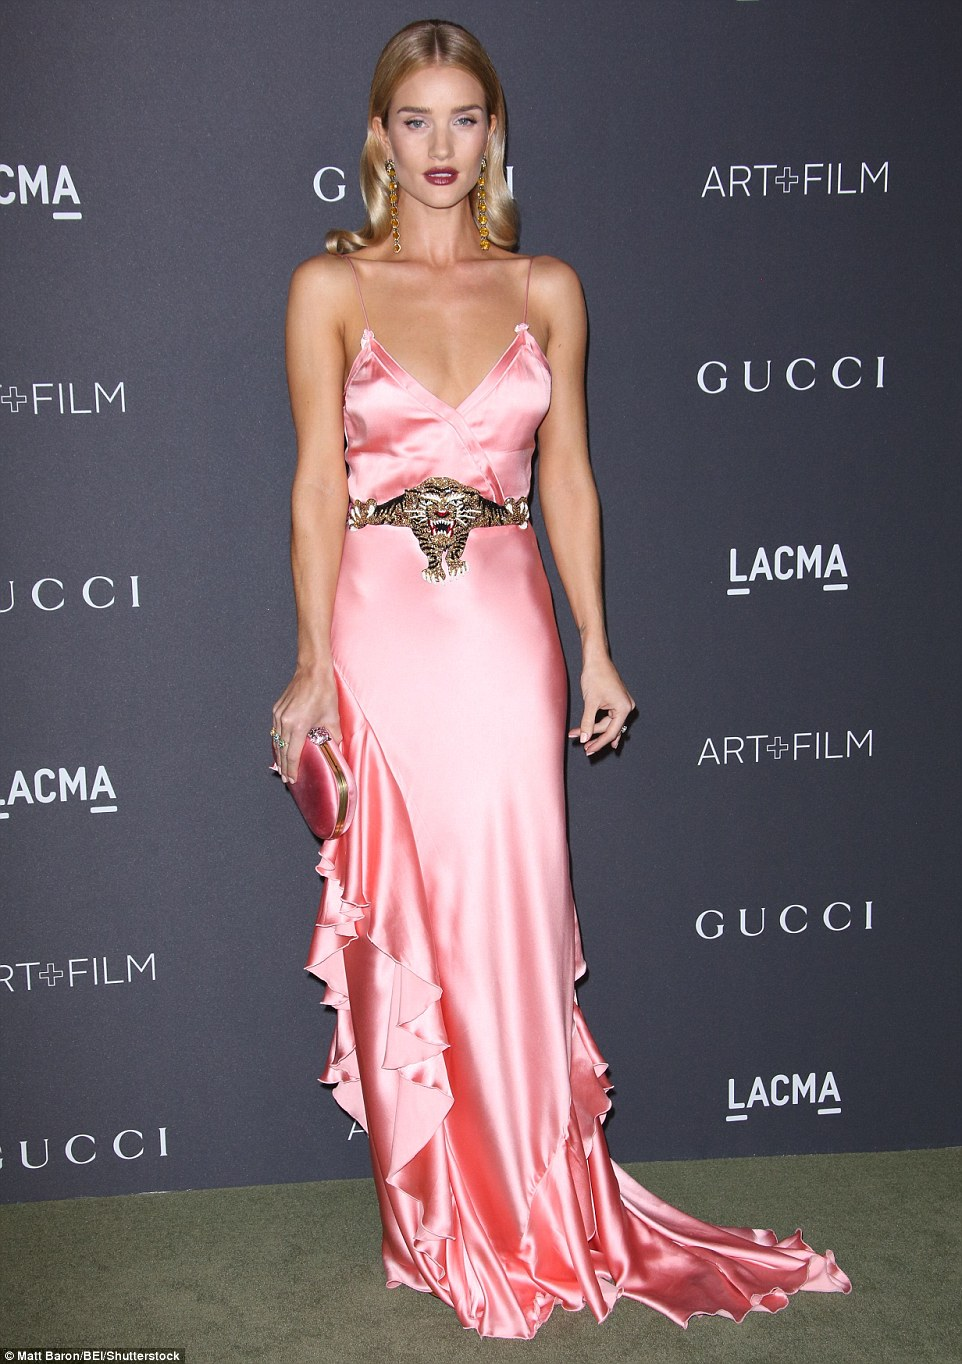 Rosie Huntington-Whiteley wears plunging gown to the LACMA Art + Film Gala in LA